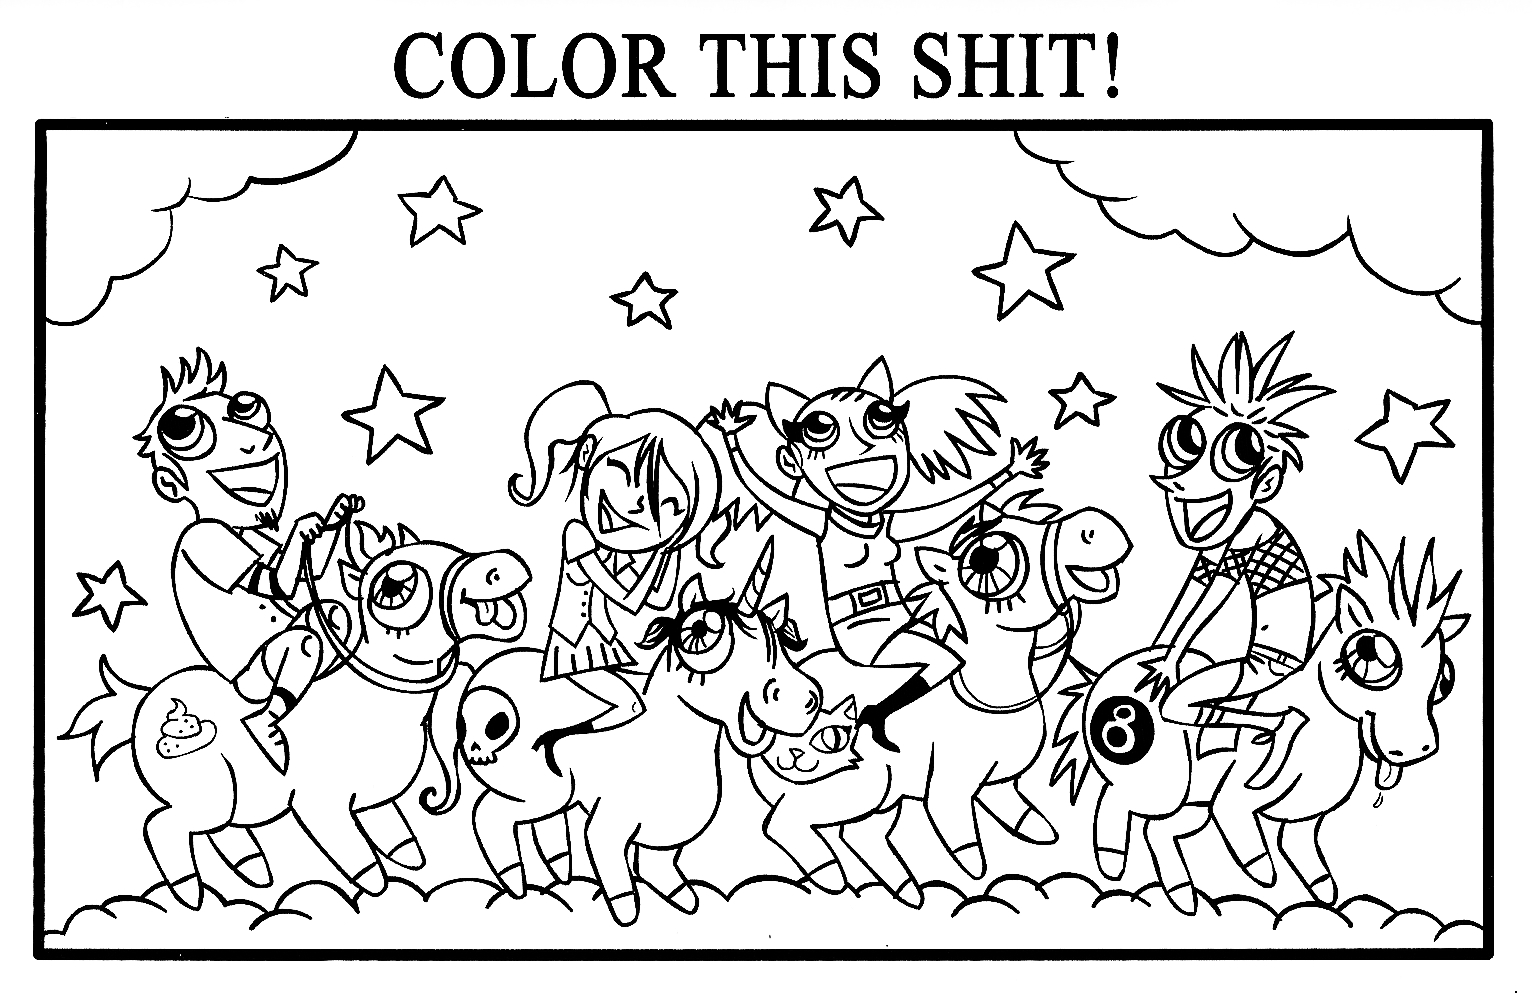 Coloring page from Adventures into Mindless Self Indulgence (Nov 2010)